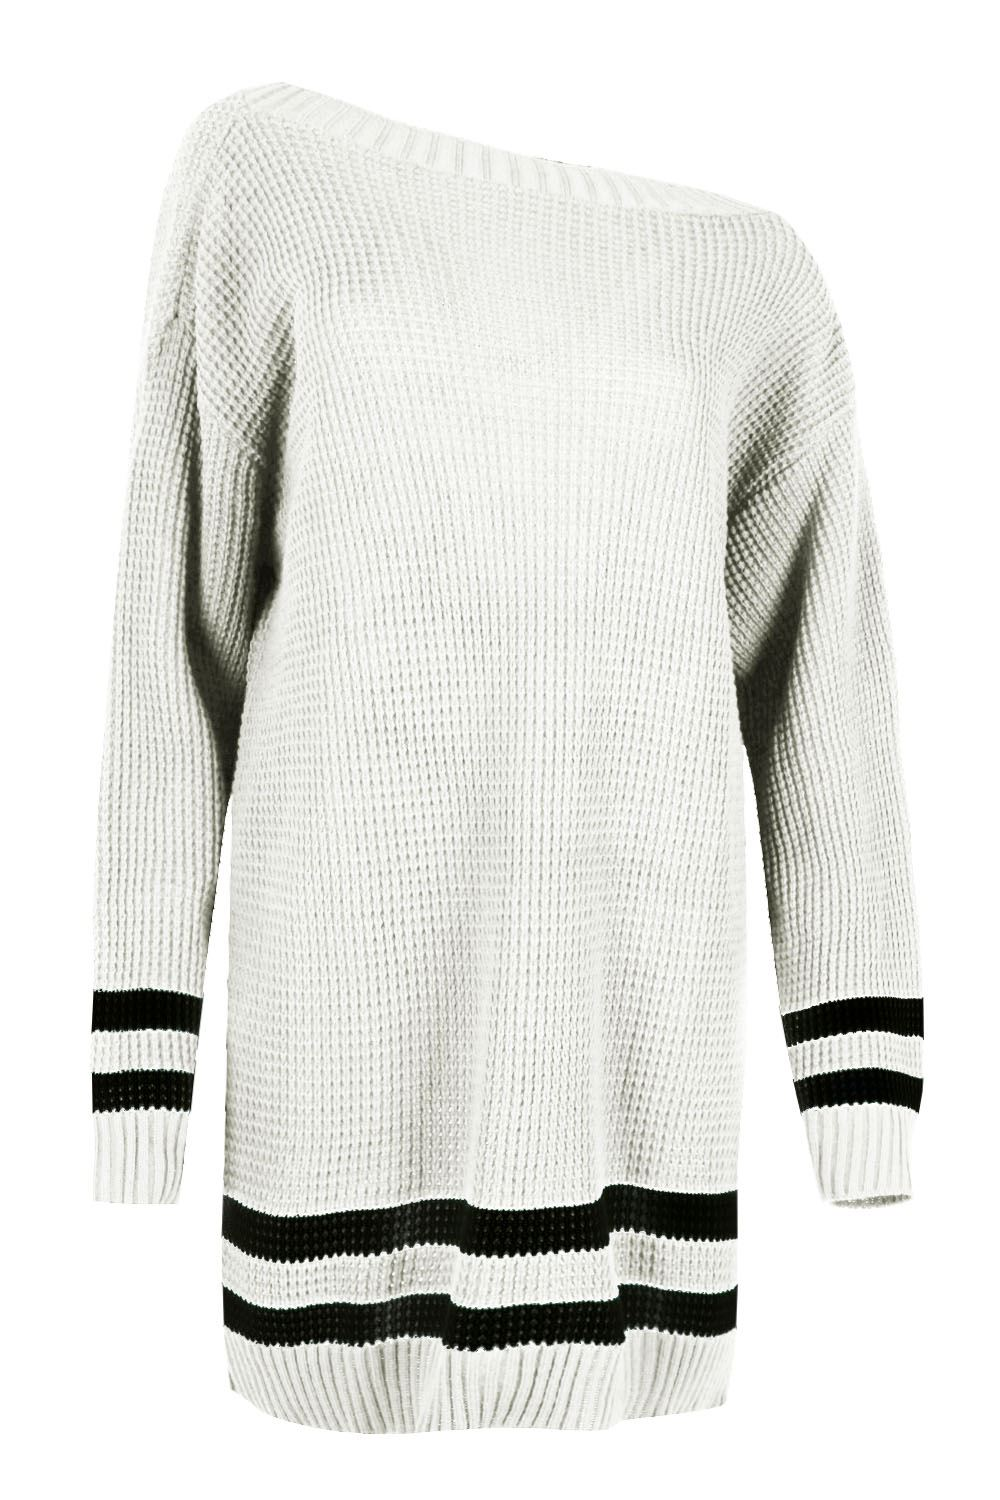 Womens-Oversized-Jumper-Ladies-Dress-Long-Sleeve-Chunky-Knitted-Long-Sweater-Top thumbnail 22